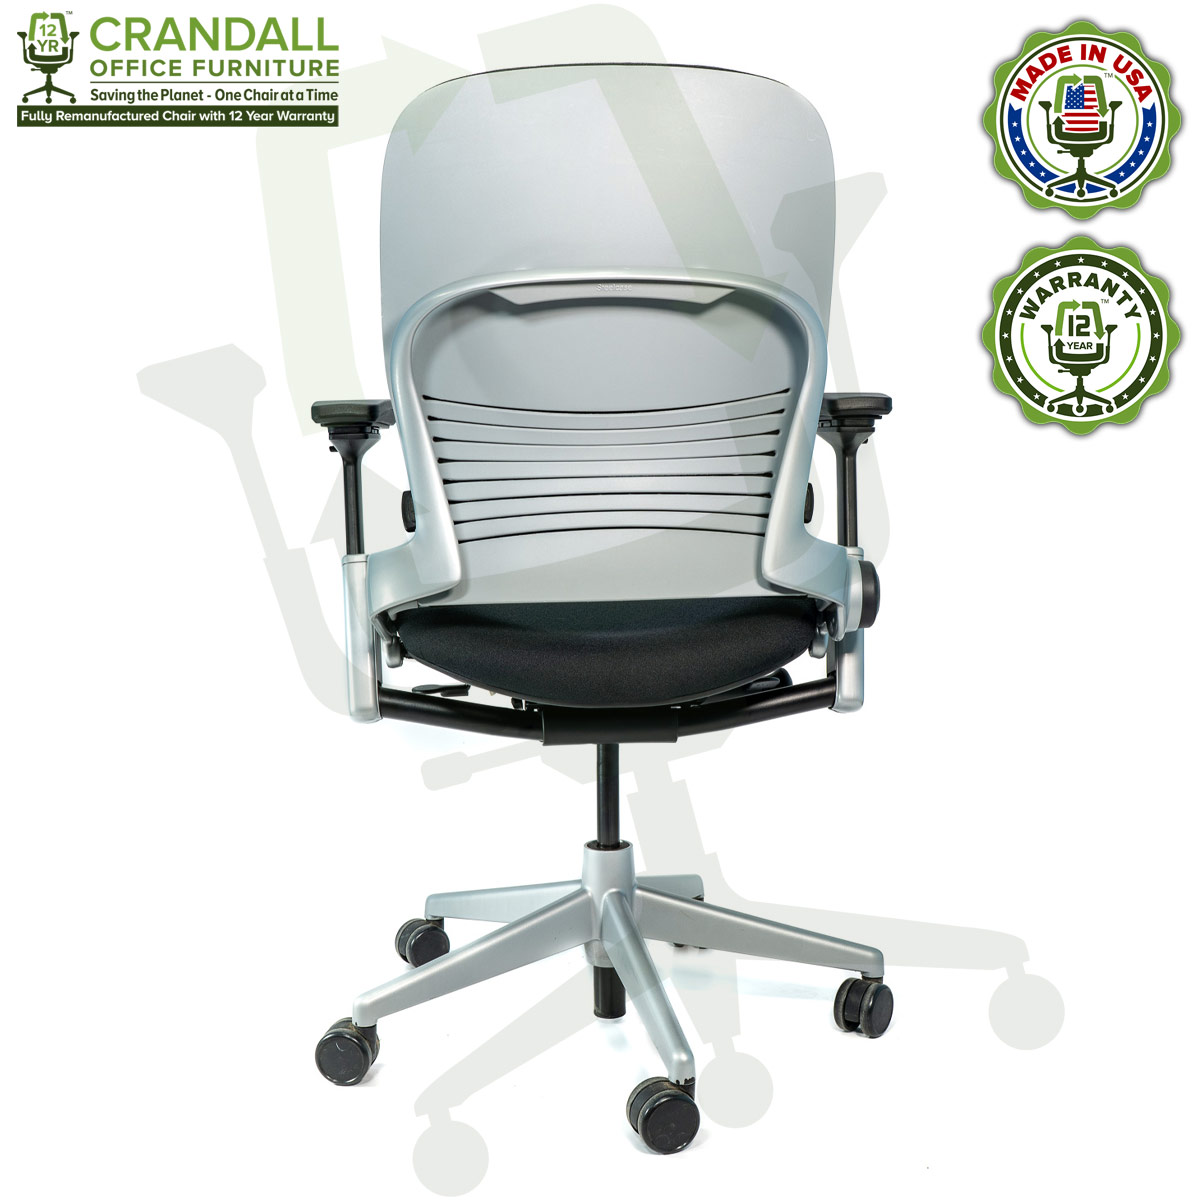 Crandall Office Furniture Remanufactured Steelcase V2 Leap Chair - Platinum Frame 07